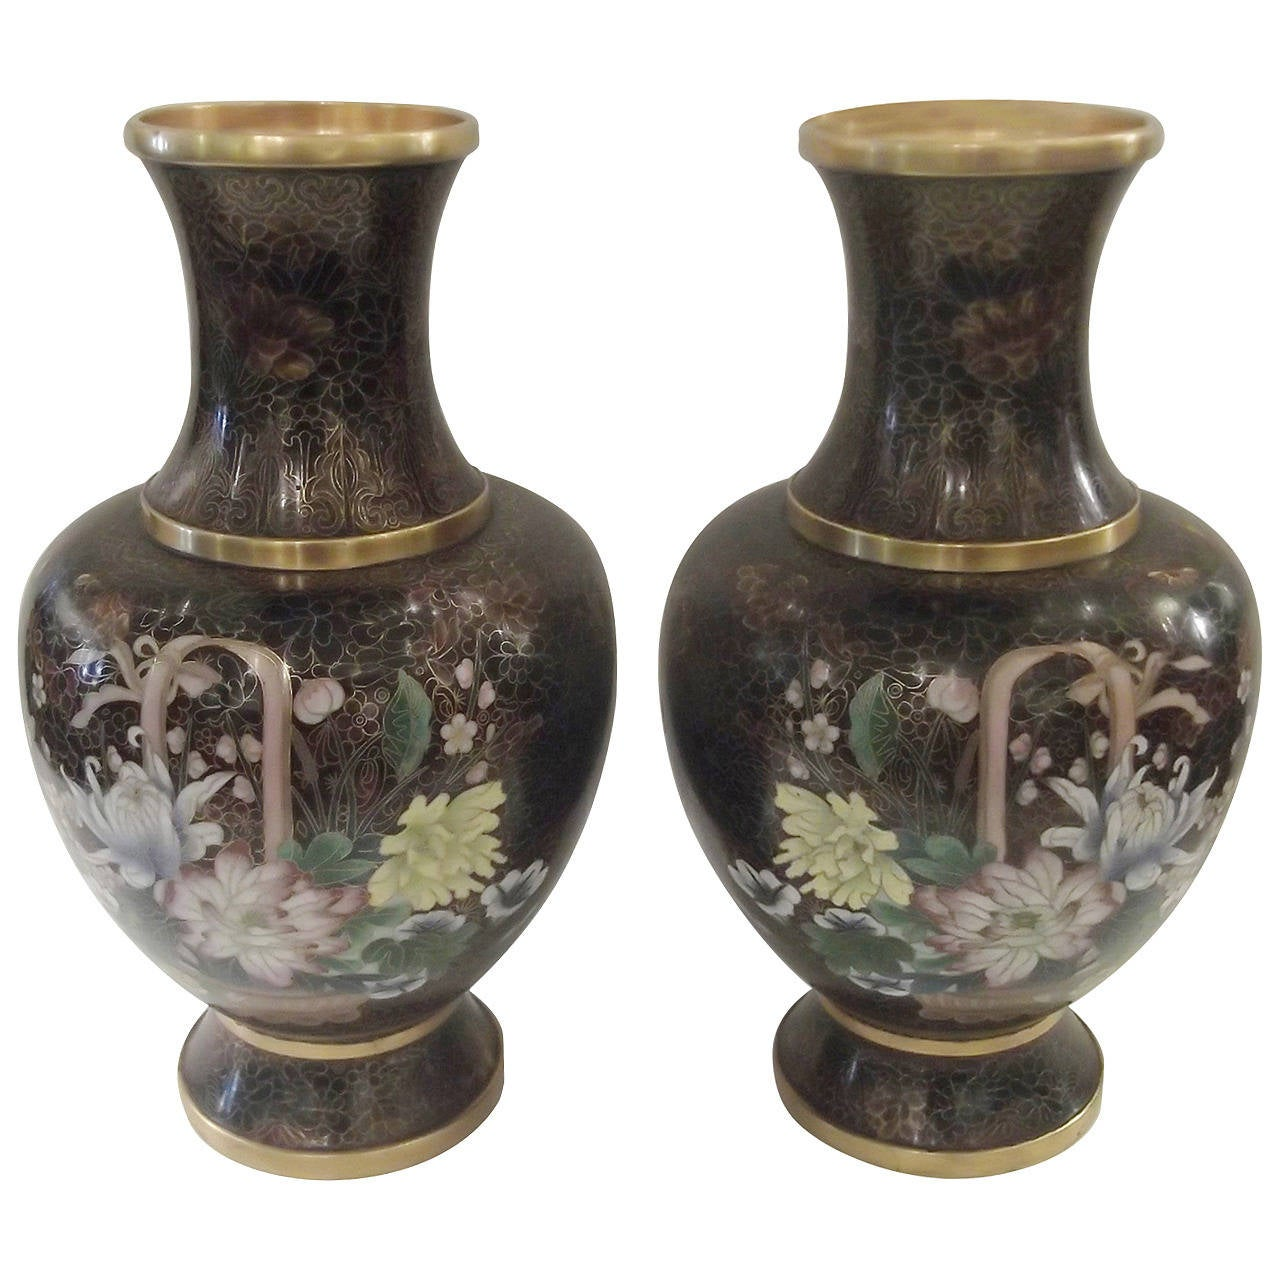 intricate pair of cloisonn bulbous vases for sale at 1stdibs. Black Bedroom Furniture Sets. Home Design Ideas